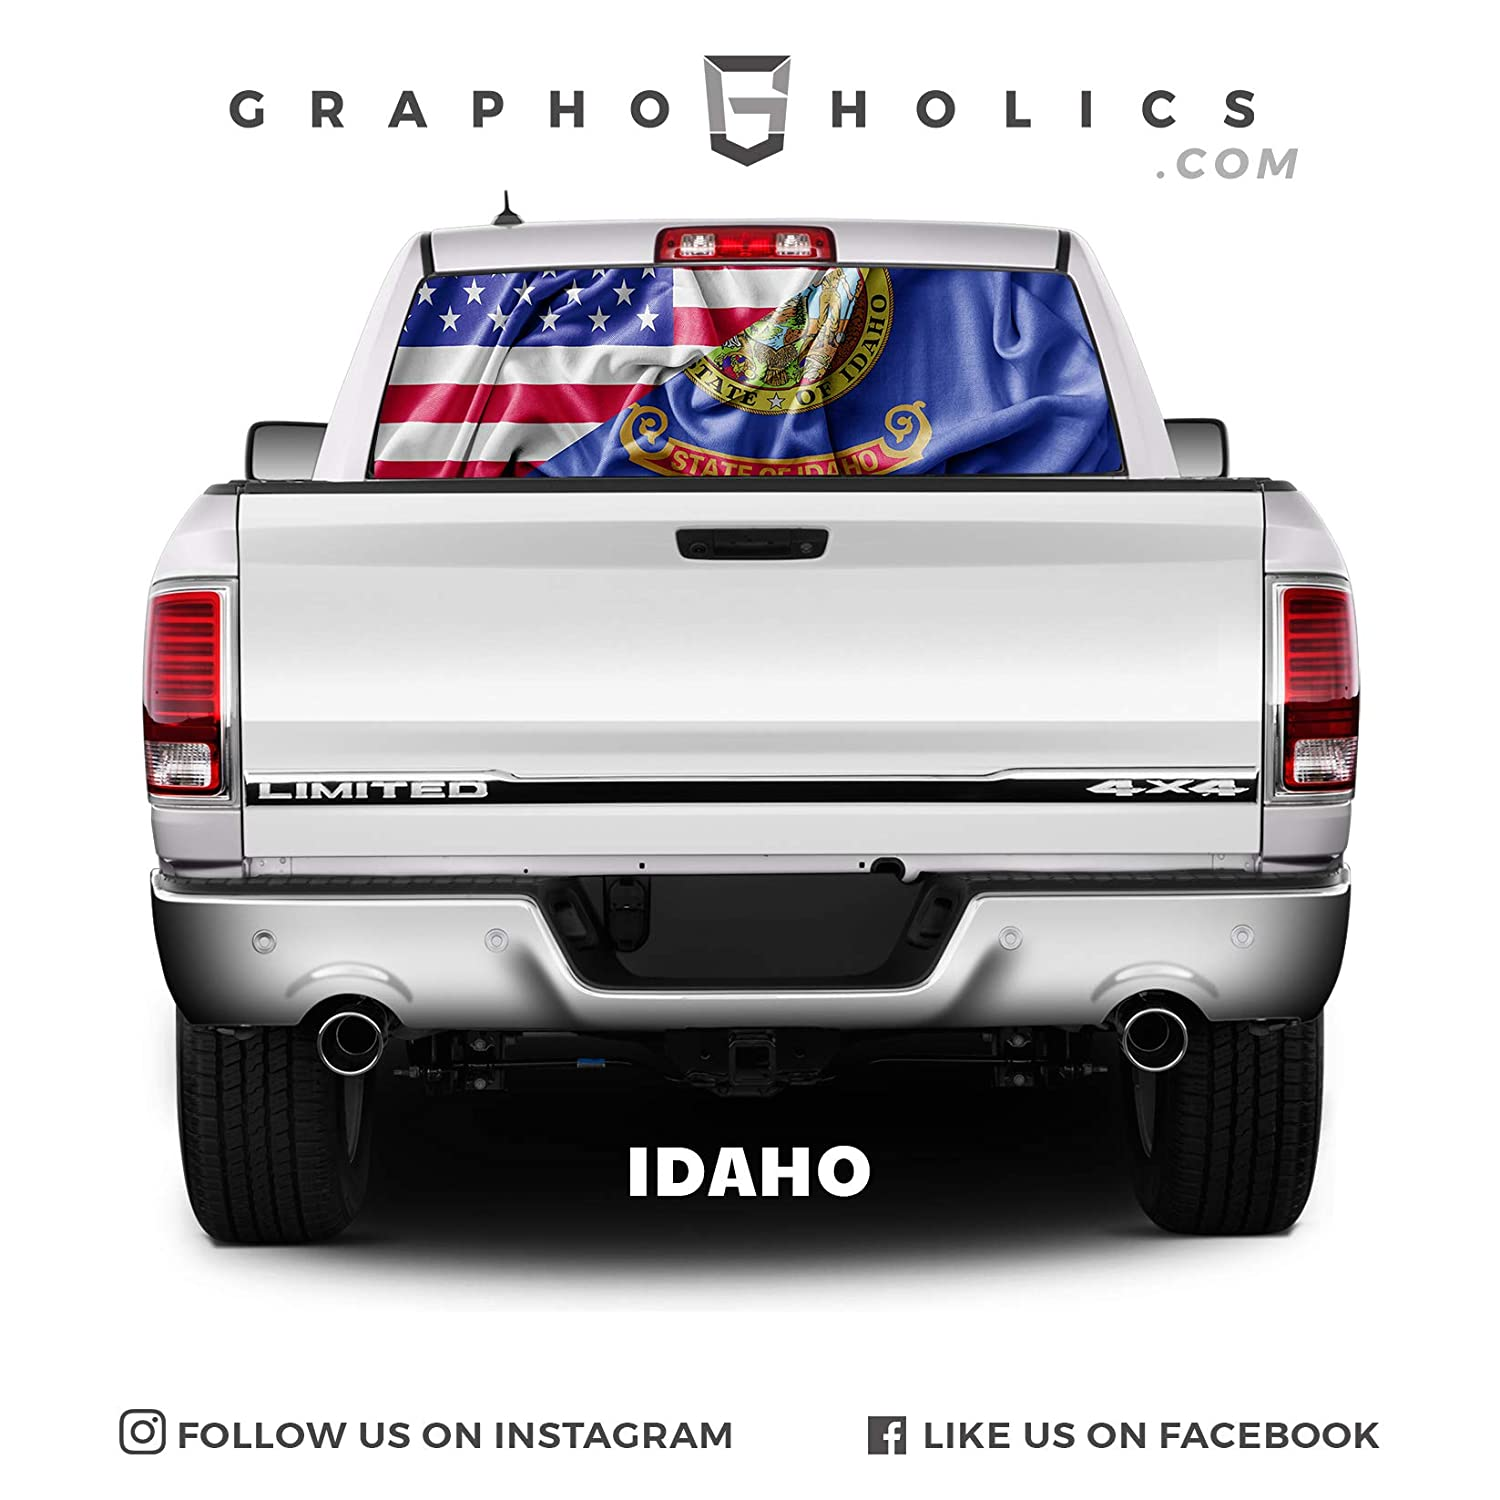 Idaho Pick-Up Truck Perforated Rear Window Wrap